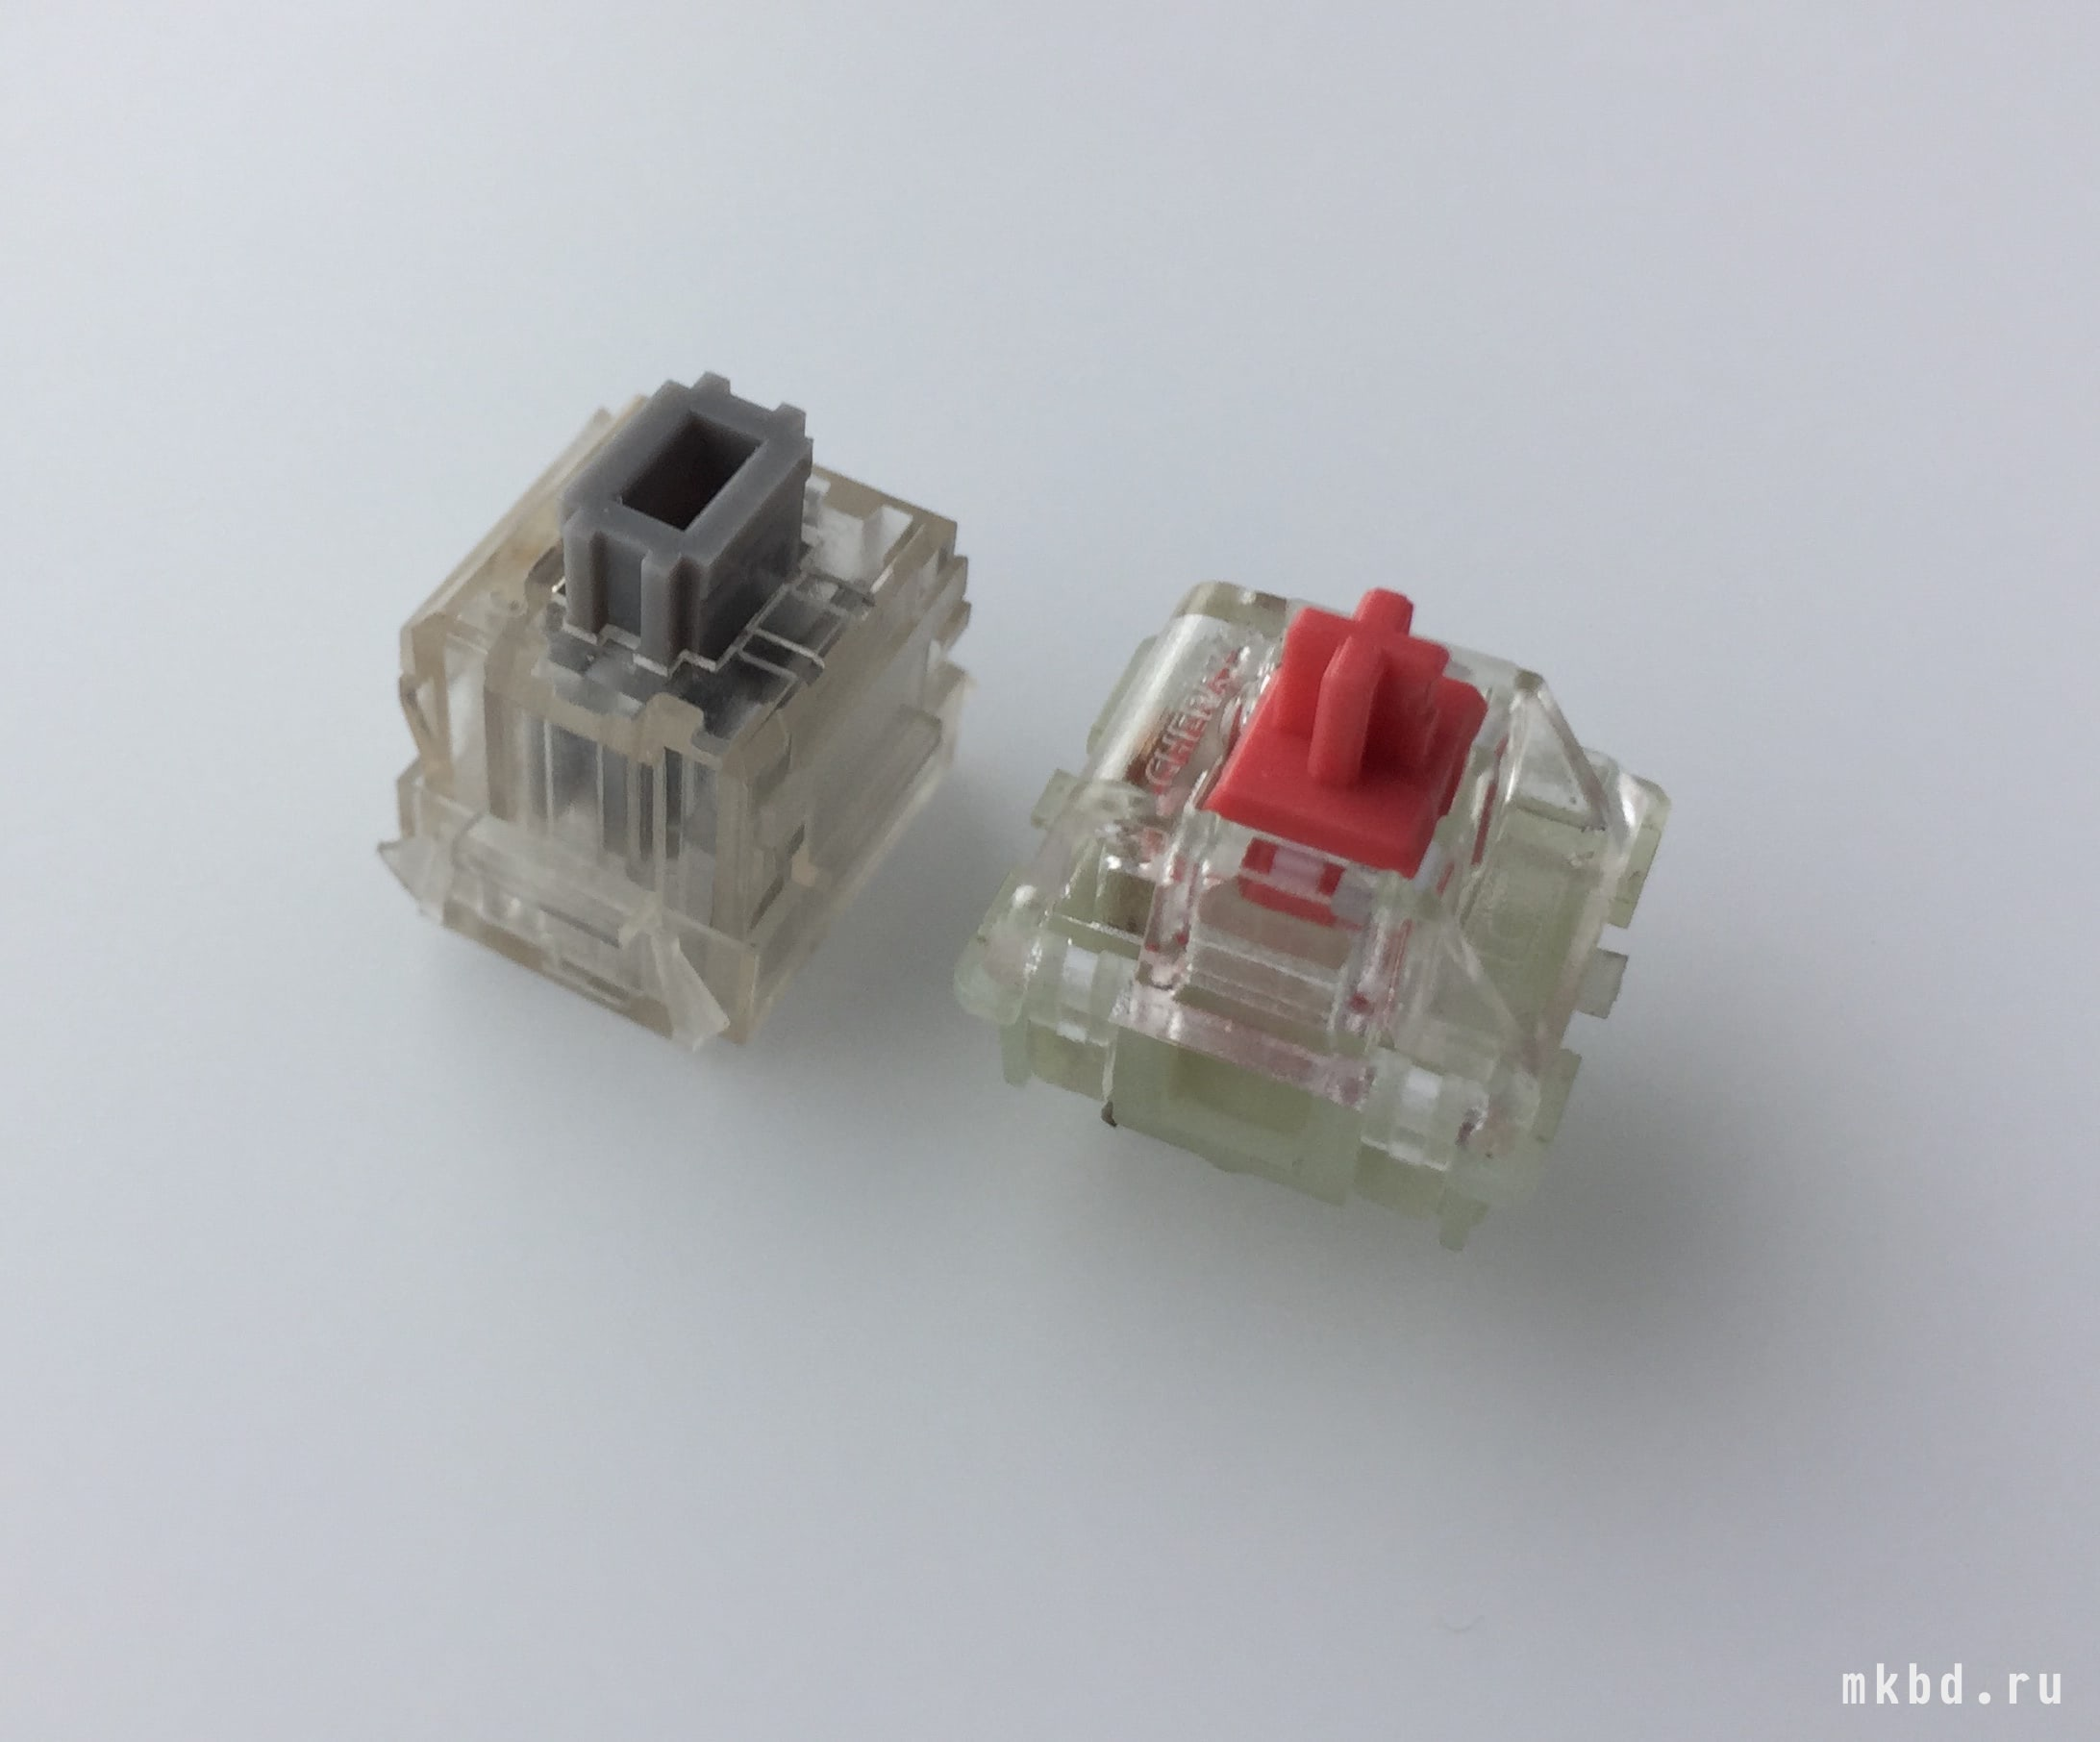 Matias Quiled Сlick and Cherry MX Red RGB Silent switches